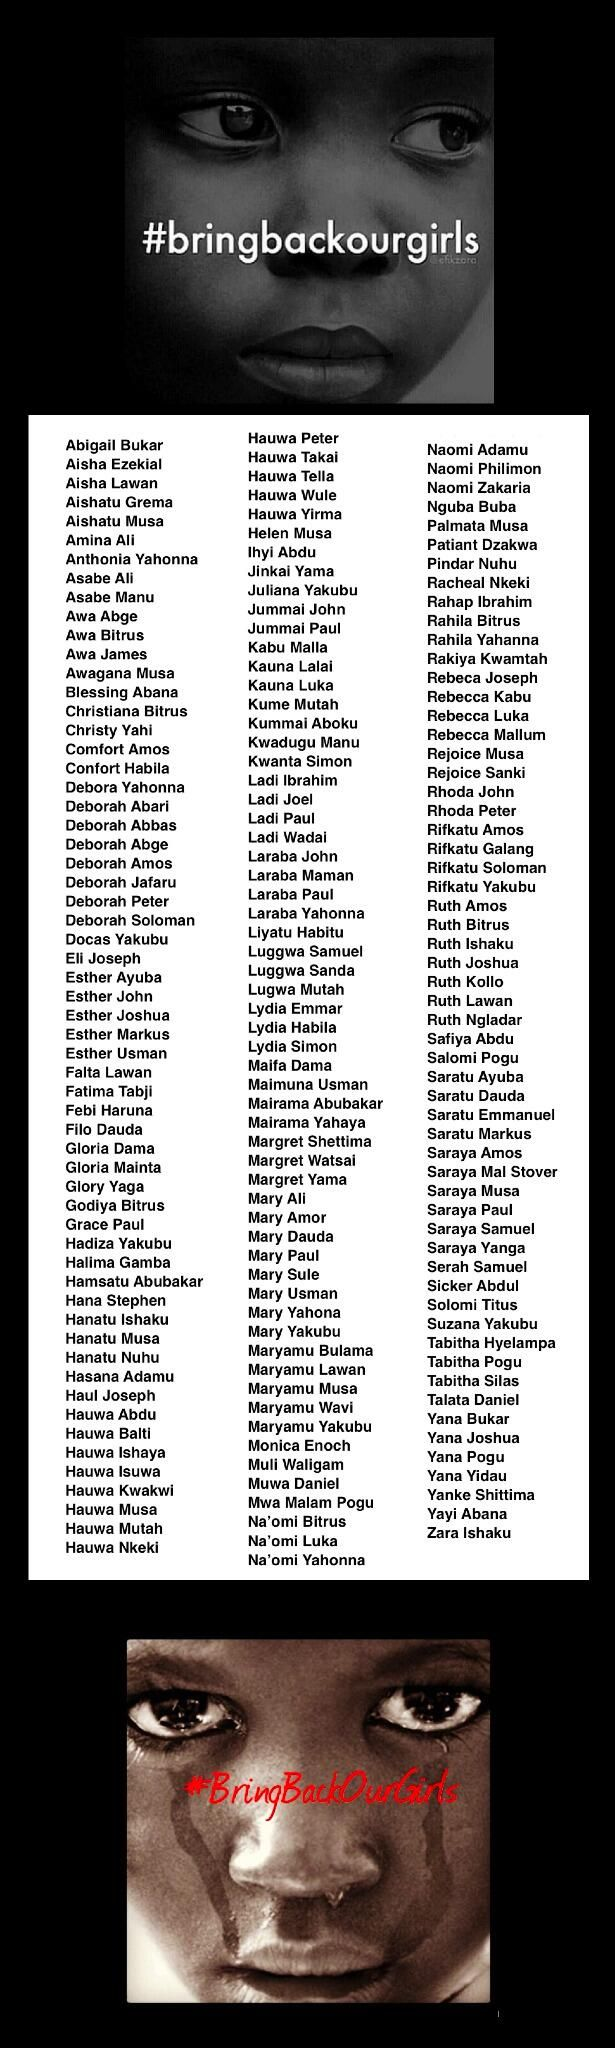 These Are The 180 Nigerian Girls Who Were Abducted and Are Now Missing. (Let's harness the power of social media to keep the pressure on.)